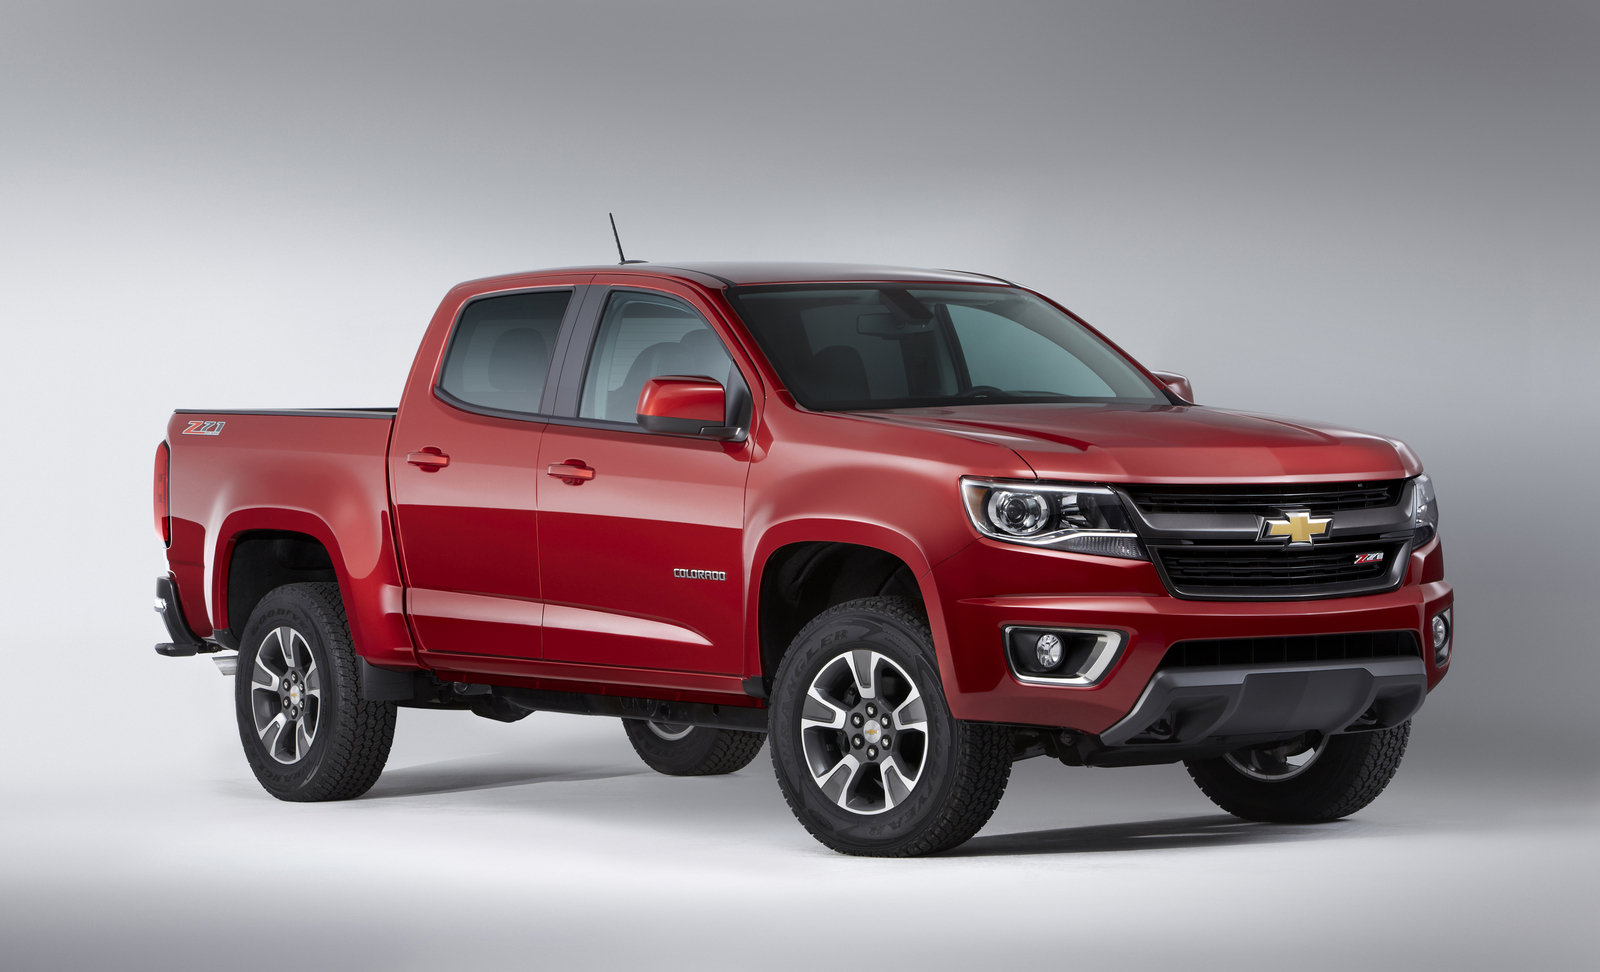 2015 Chevrolet Colorado Review - Top Speed